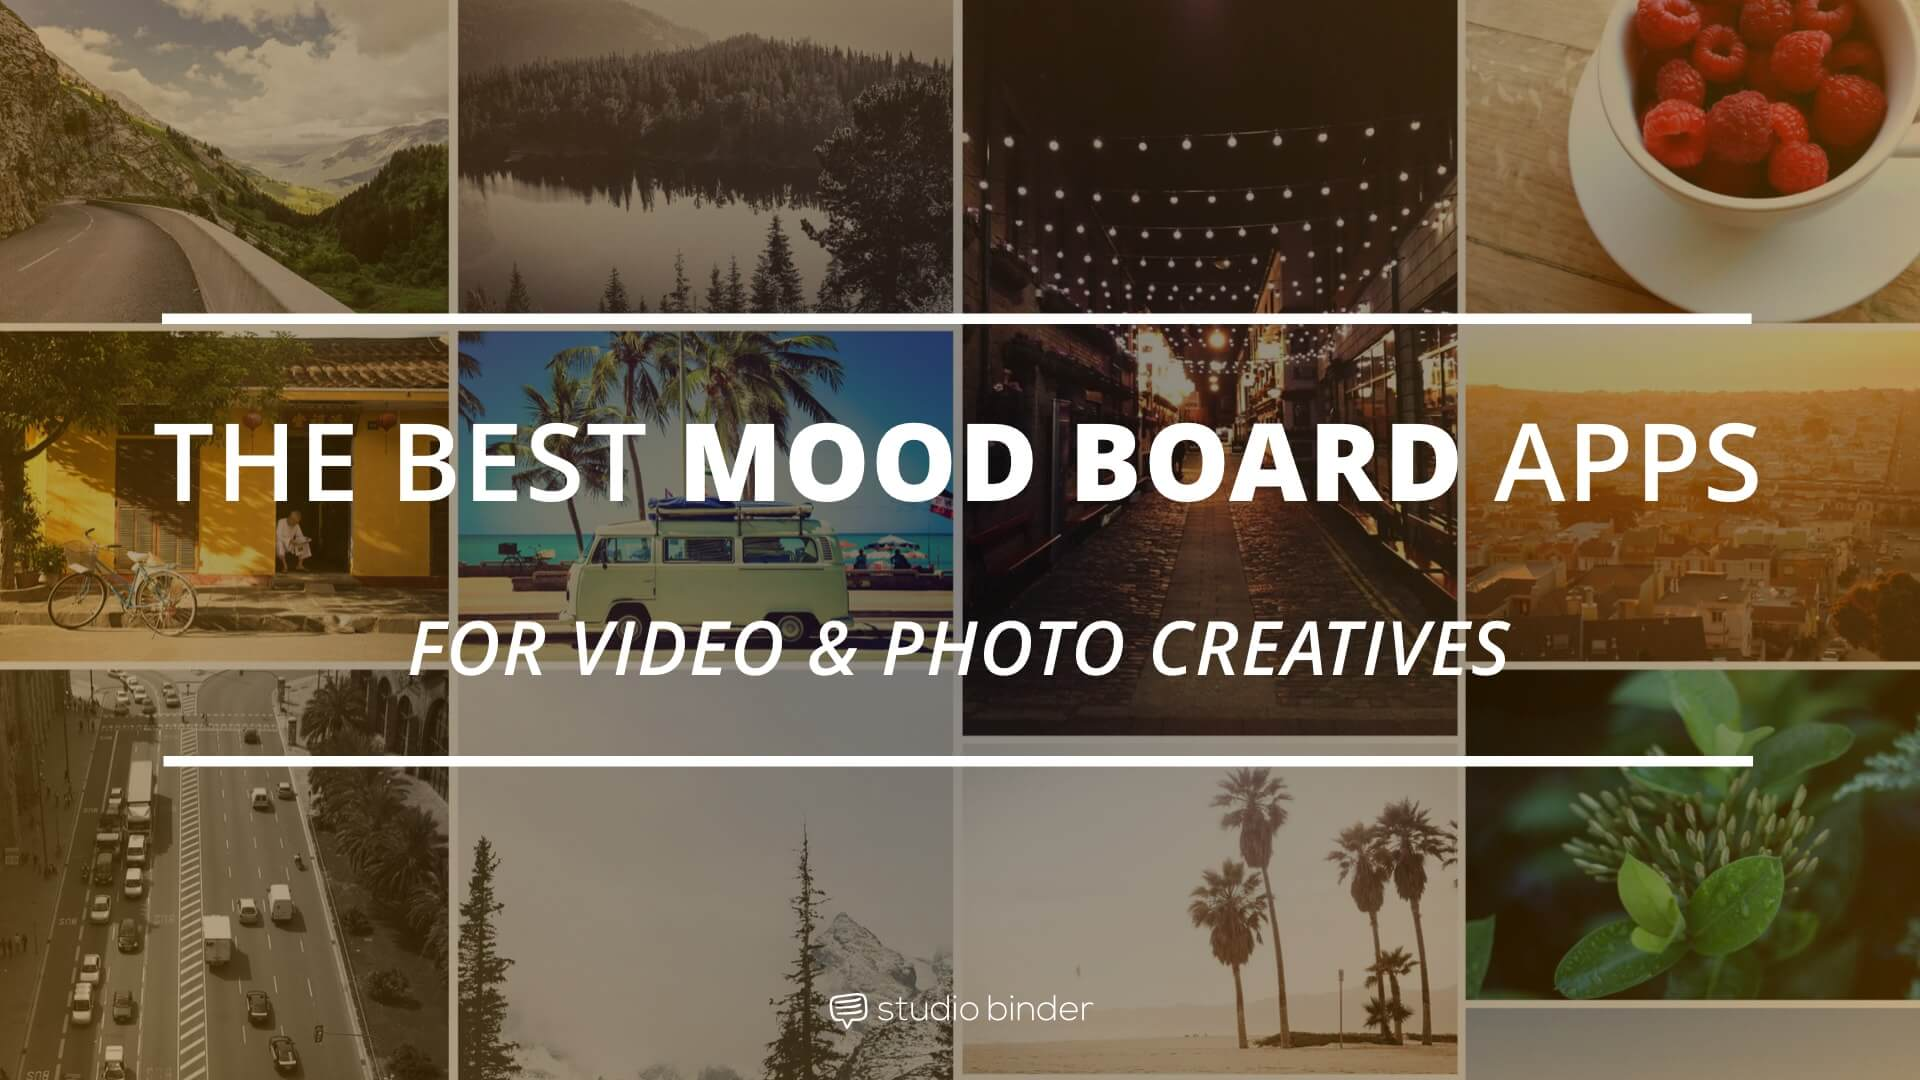 Top 14 Mood Board Apps of 2017 for Video Production [with FREE Template] - Featured - StudioBinder